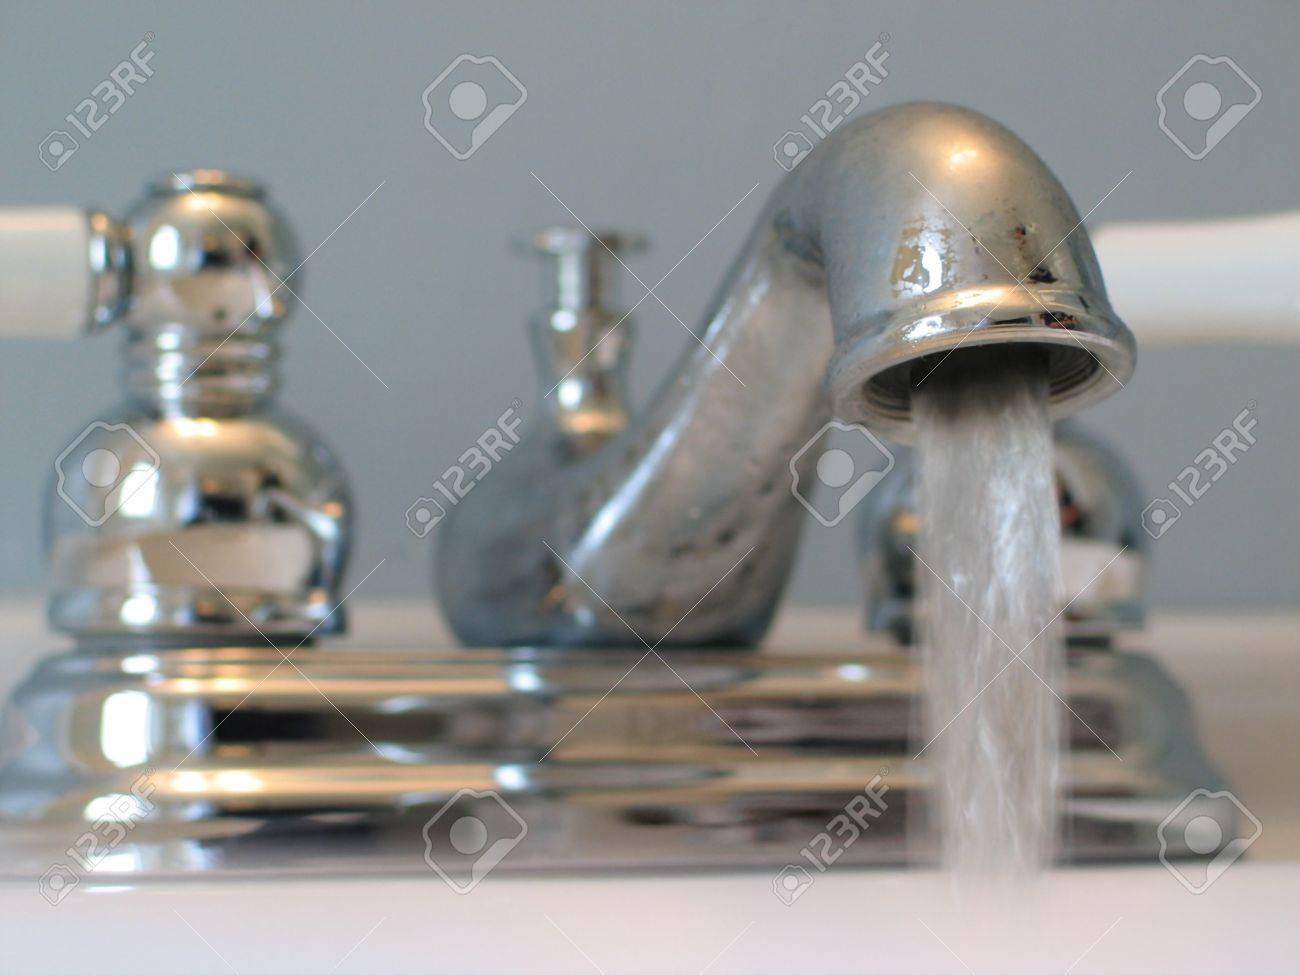 Close-up Of Old-fashioned Looking Chrome And Porcelain Faucet ...